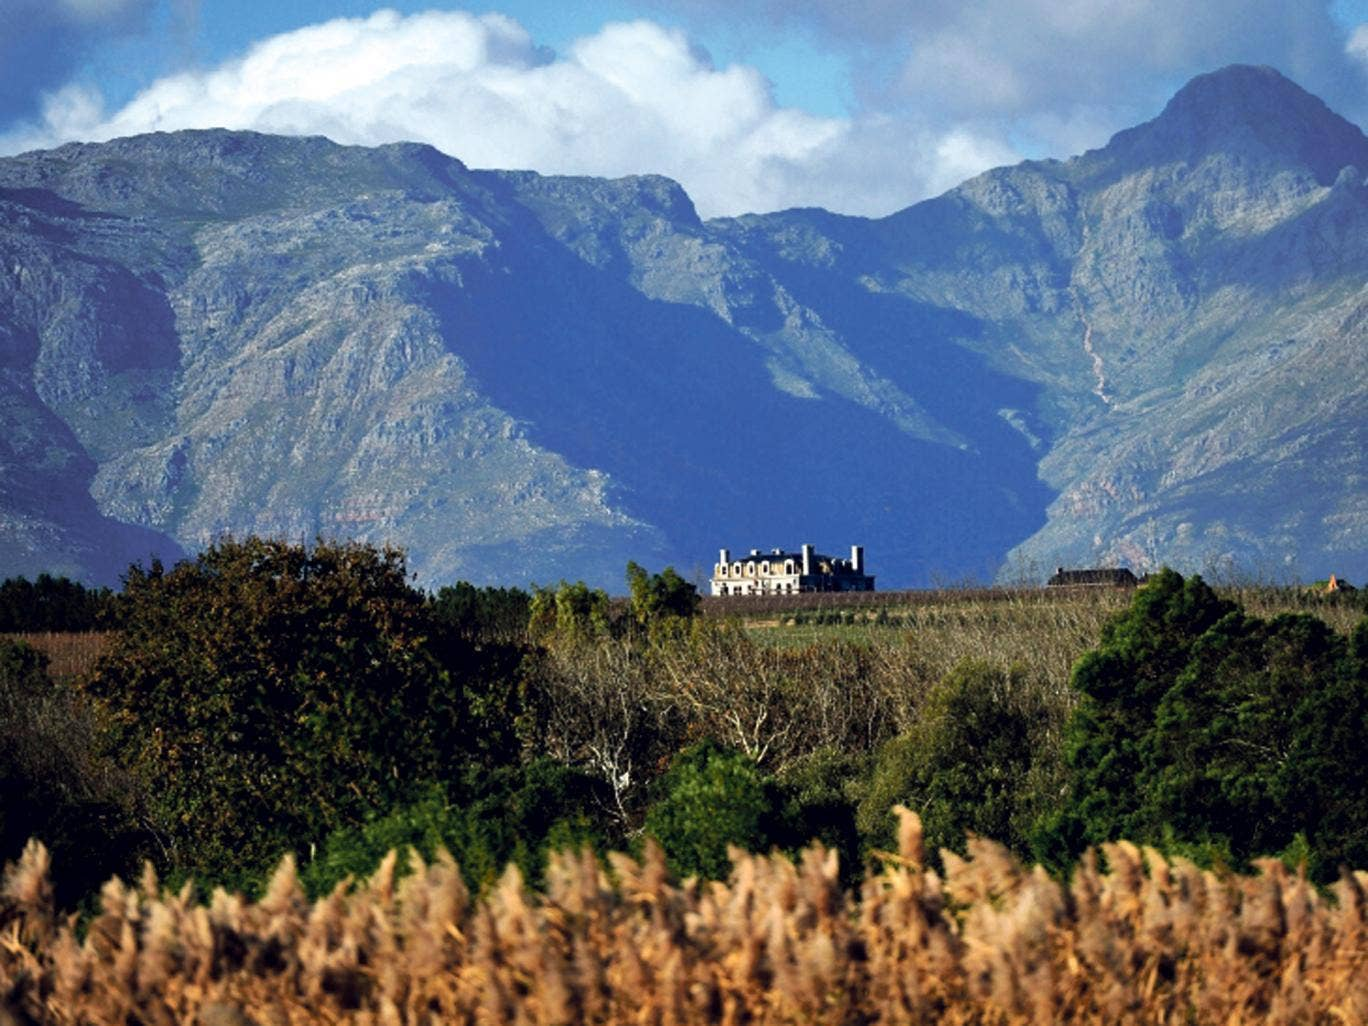 Vintage view: the winelands of Stellenbosch in South Africa